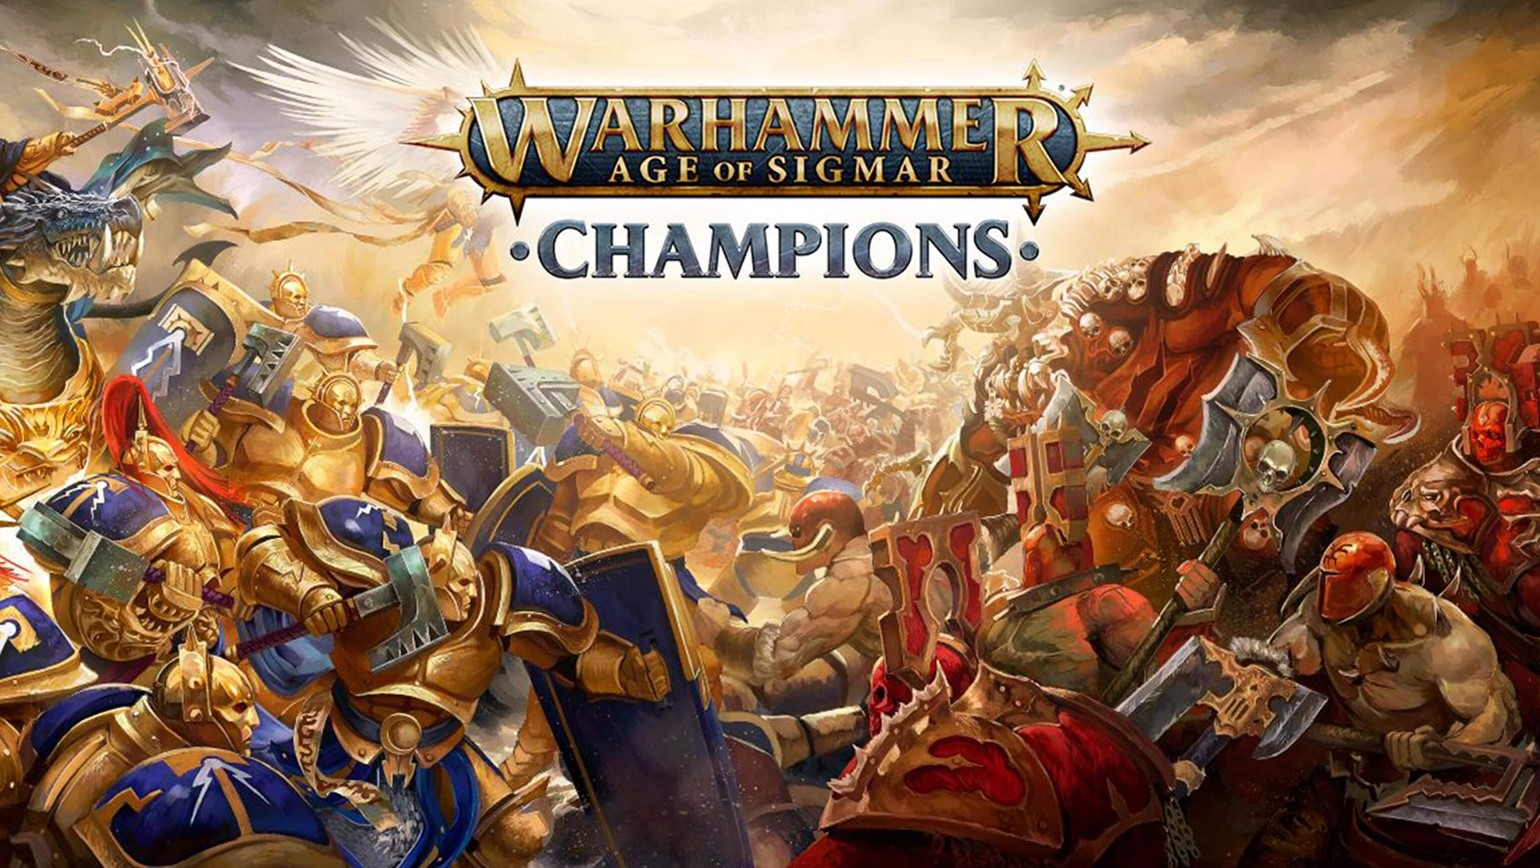 Warhammer Age of Sigmar: Champions from PlayFusion Arriving August 2nd